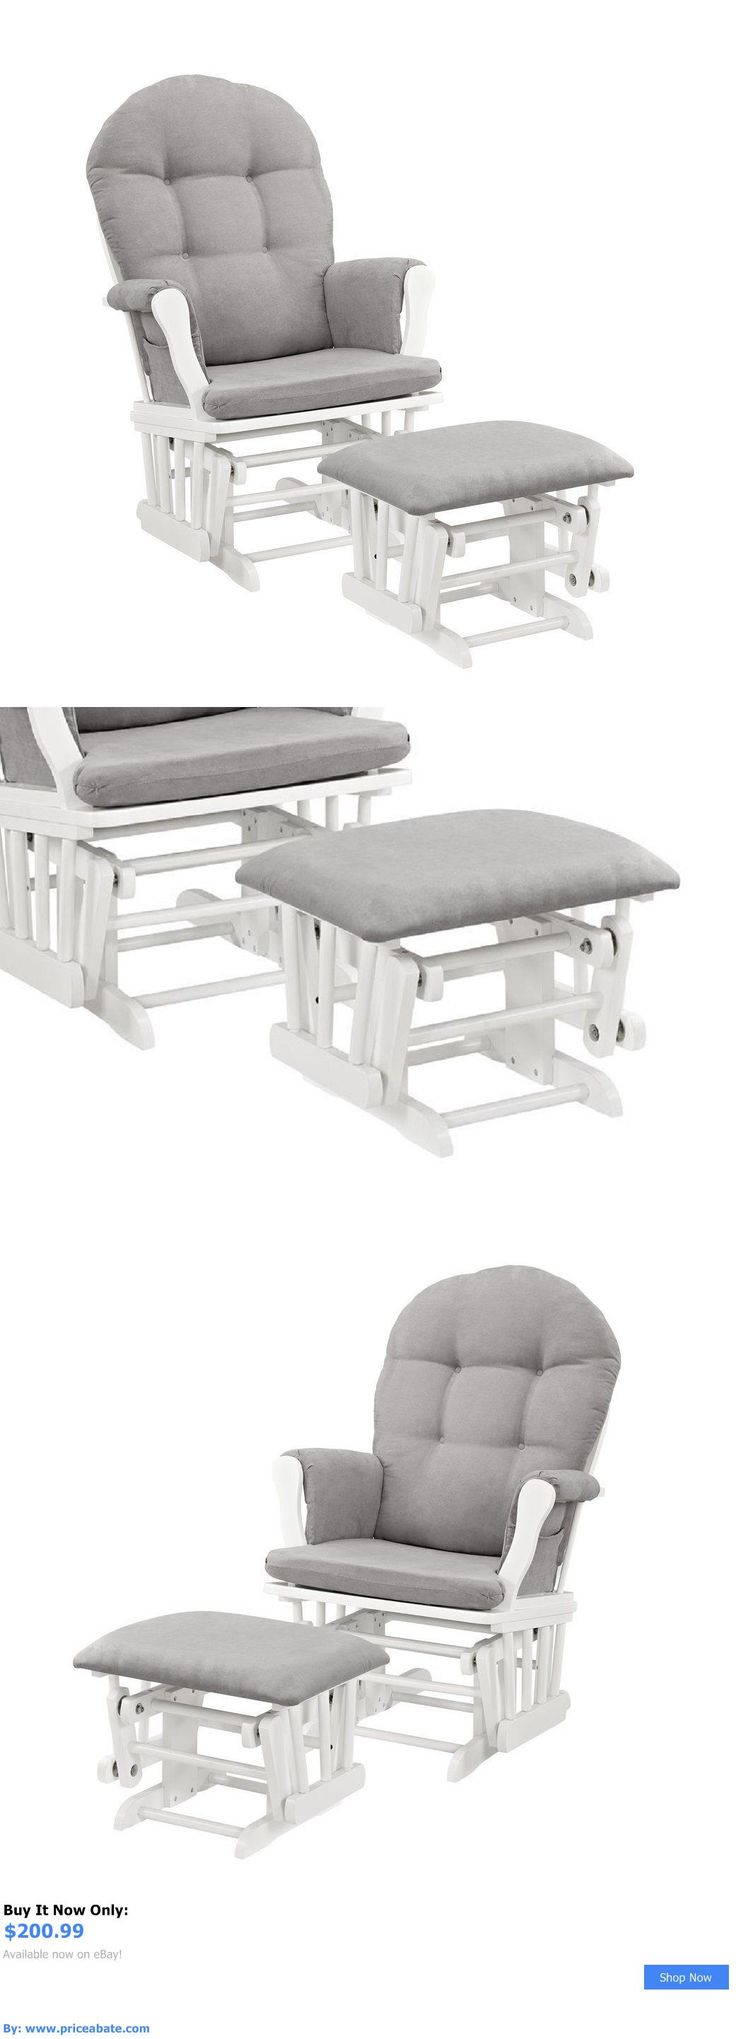 baby nursery nursery glider chair ottoman set baby rocker furniture rocking white gray new buy